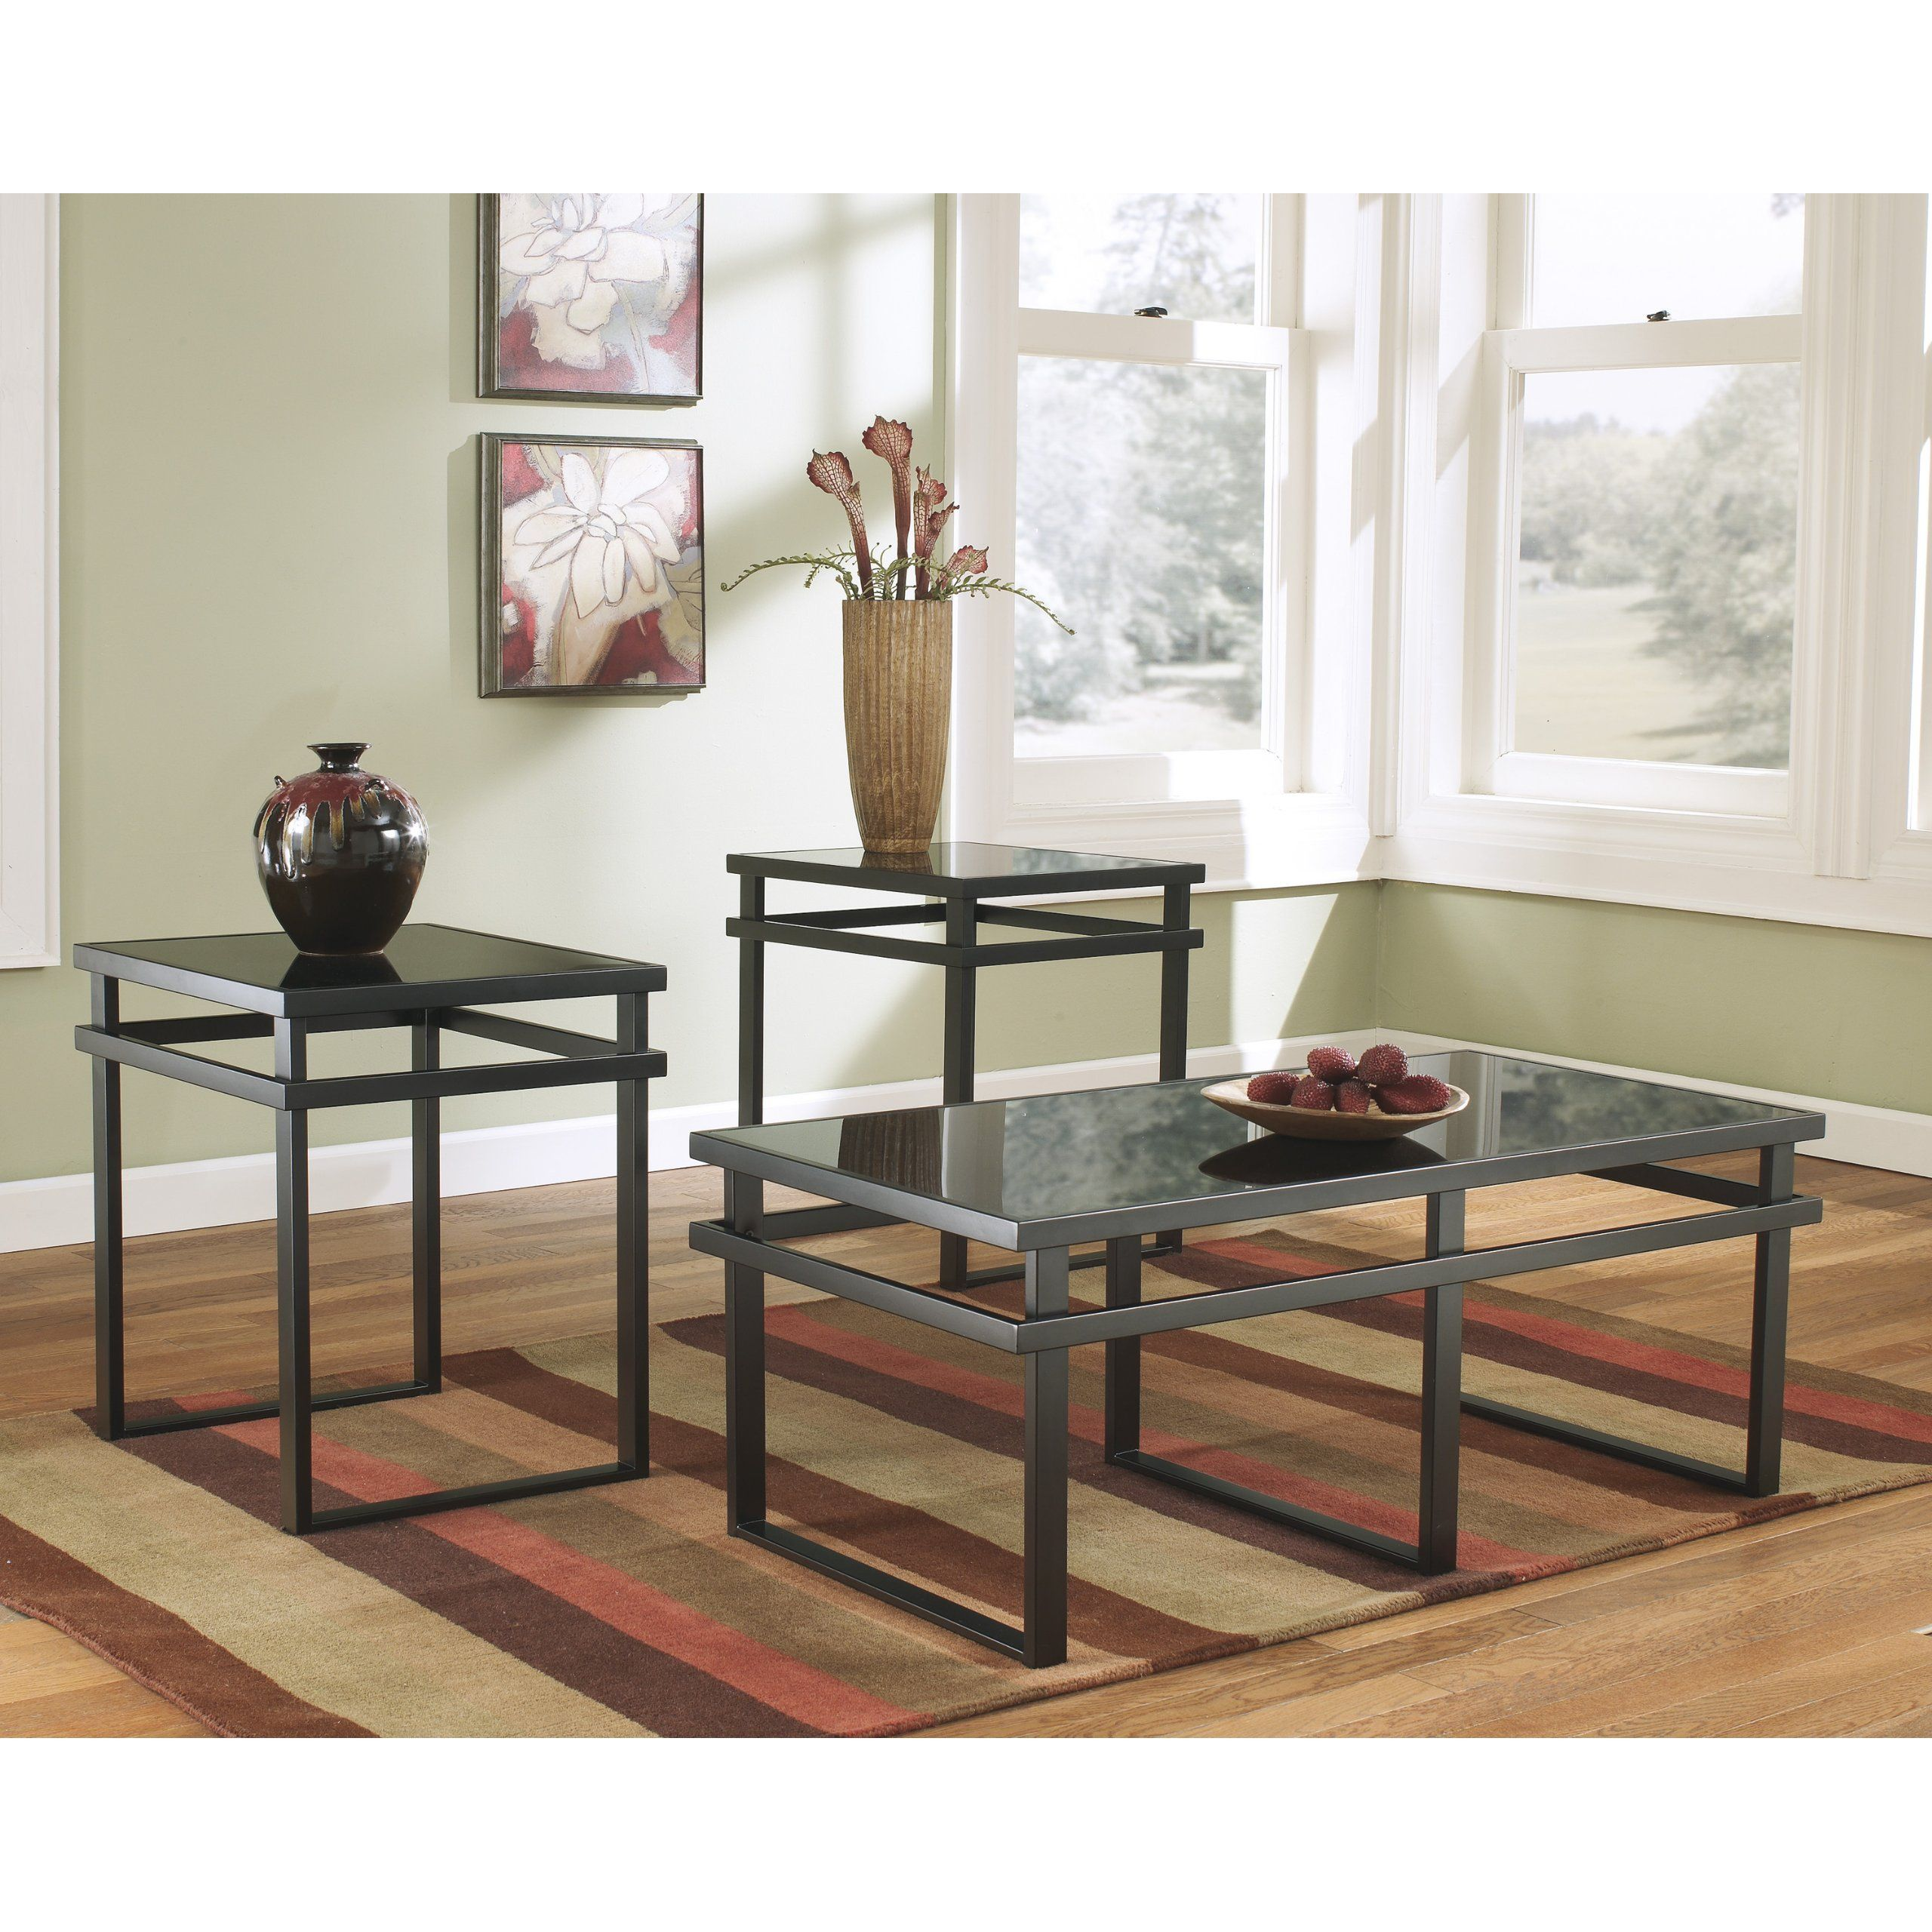 FurnitureMaxx Lane 3pc Black Metal and Glass Coffee End Table Set